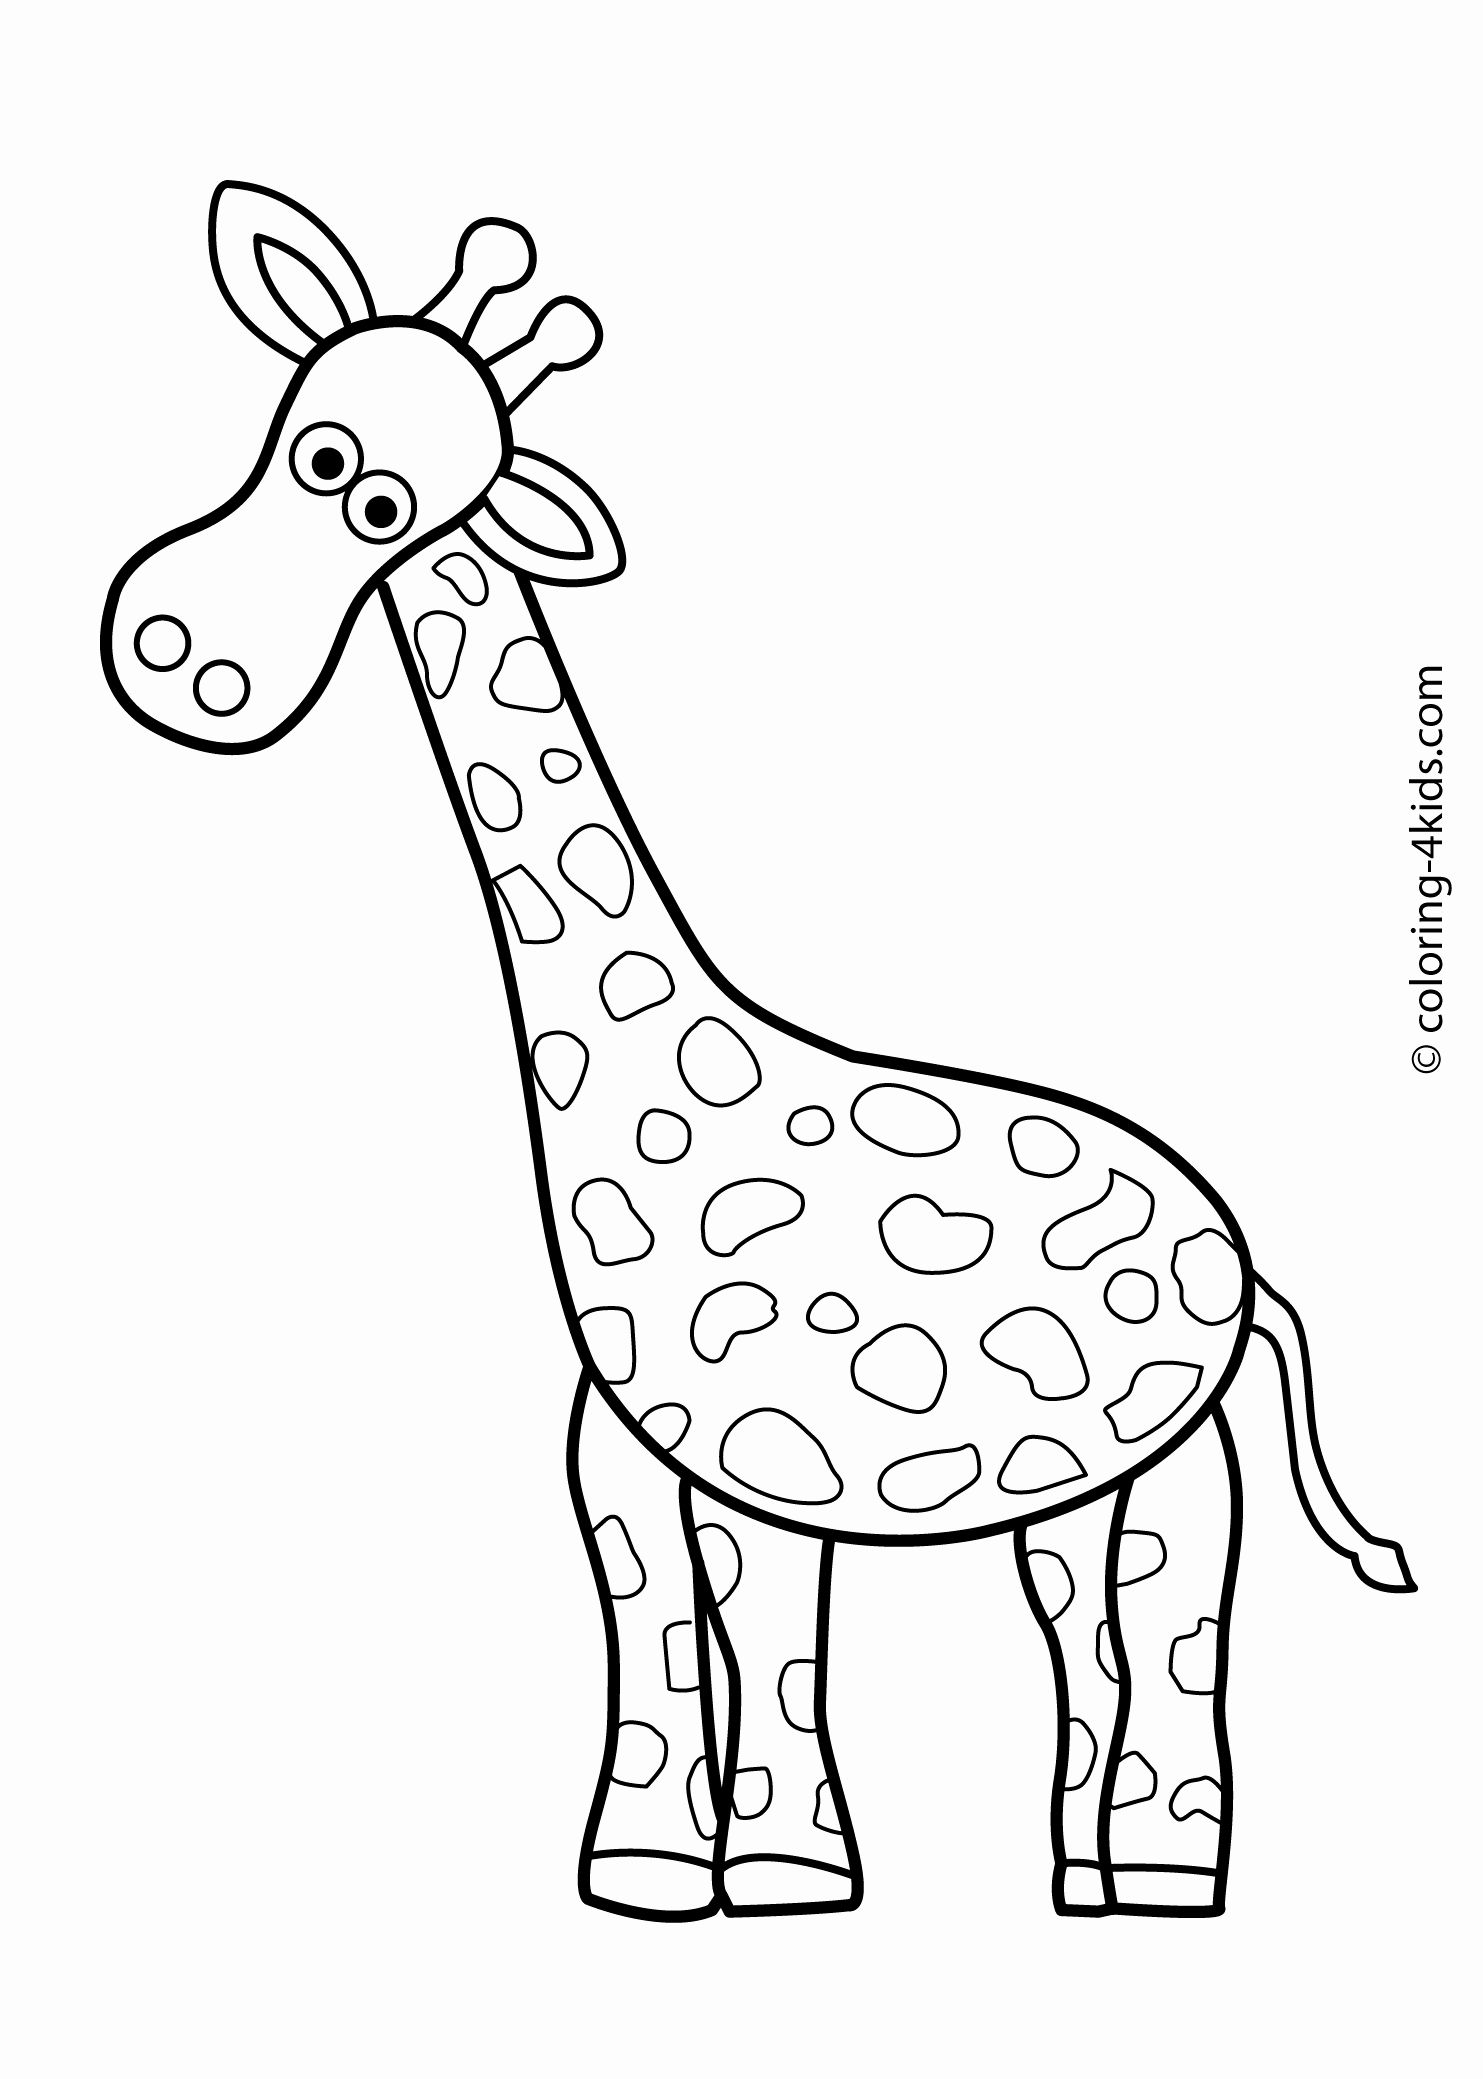 Pin By Anja Primoz On Pobarvanke 2020 Zoo Animal Coloring Pages Giraffe Coloring Pages Farm Animal Coloring Pages